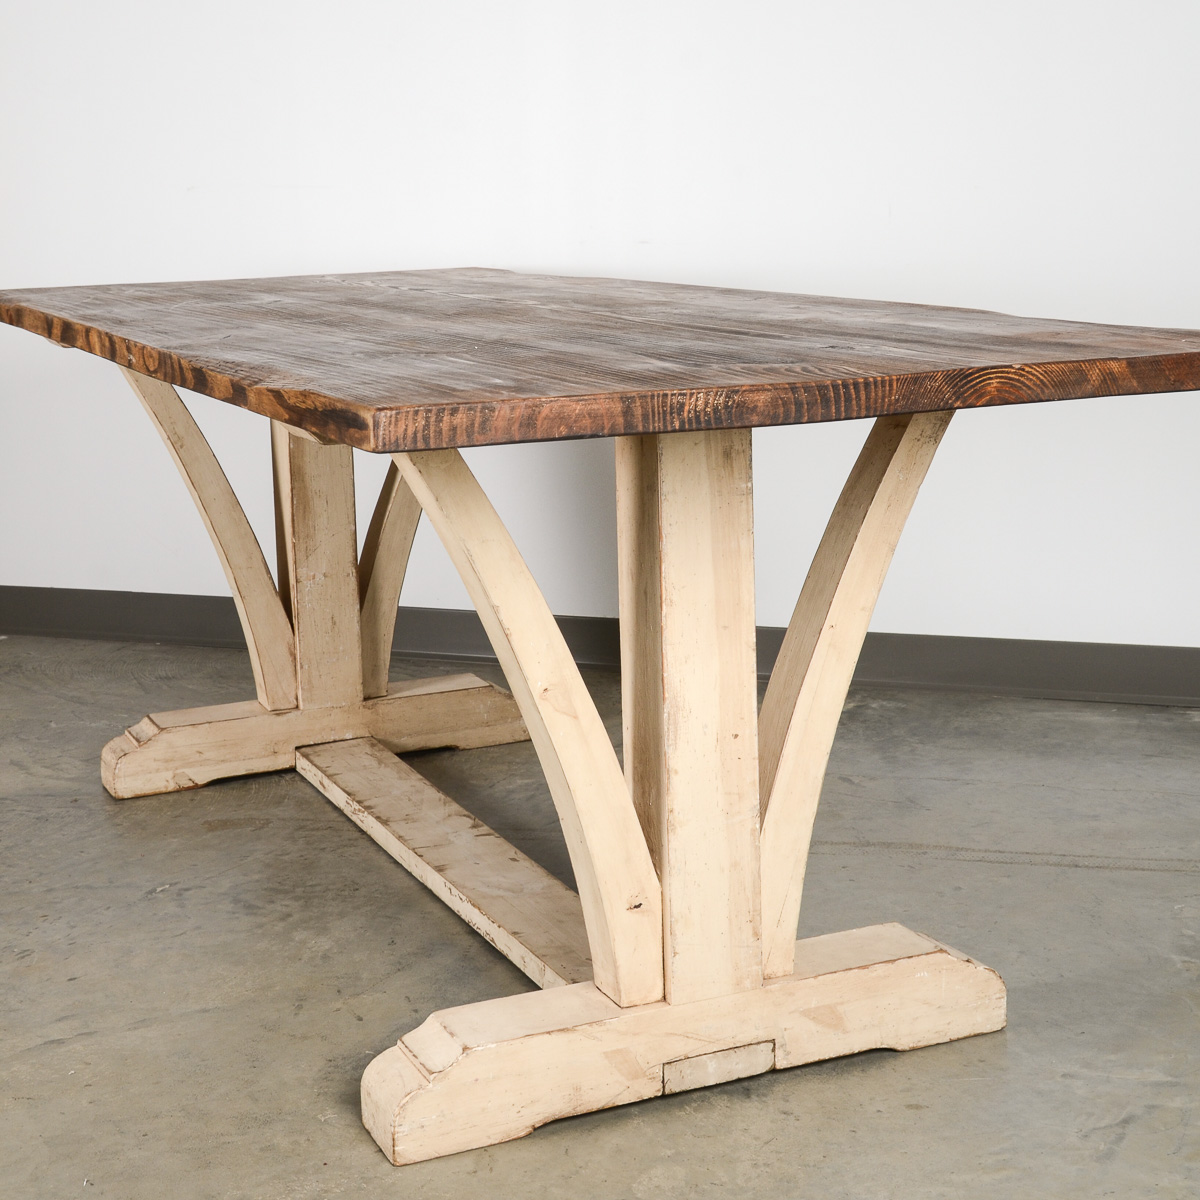 v leg dining table